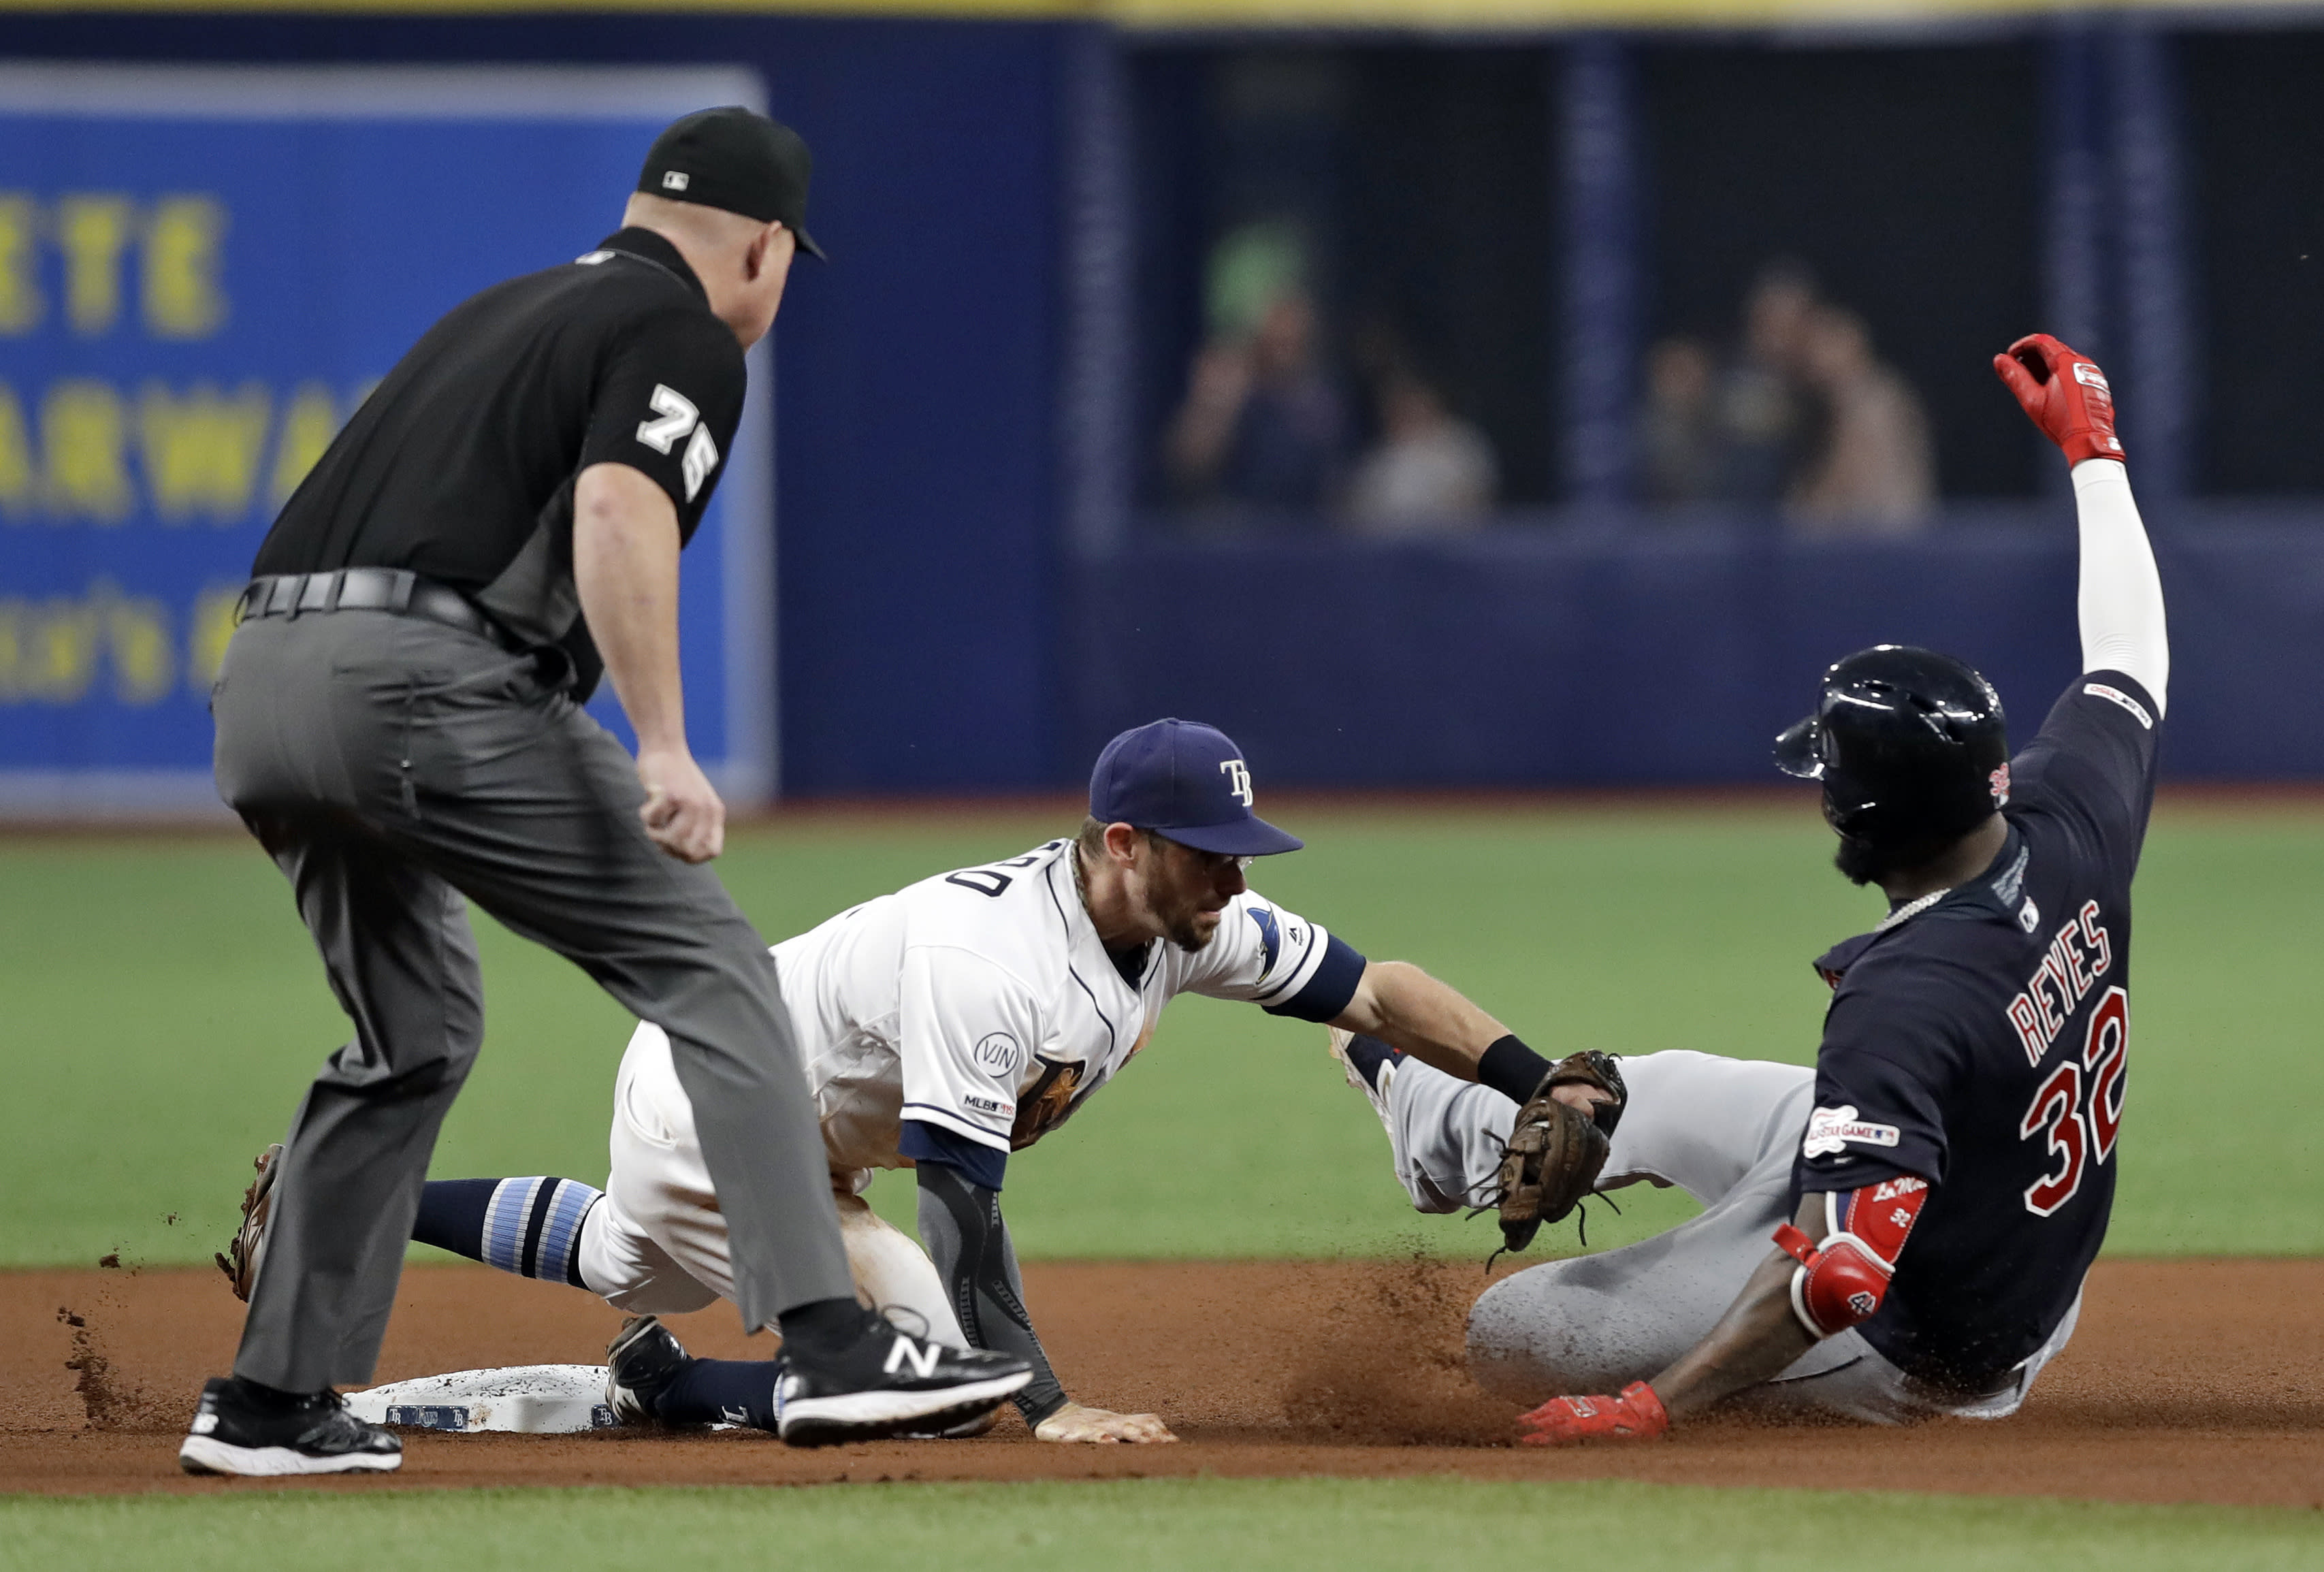 Tampa Bay Rays second baseman Eric Sogard tags out Cleveland Indians' Franmil Reyes (32), who was trying to stretch a single into a double during the fourth inning of a baseball game Saturday, Aug. 31, 2019, in St. Petersburg, Fla. Making the call is umpire Tom Woodring. (AP Photo/Chris O'Meara)